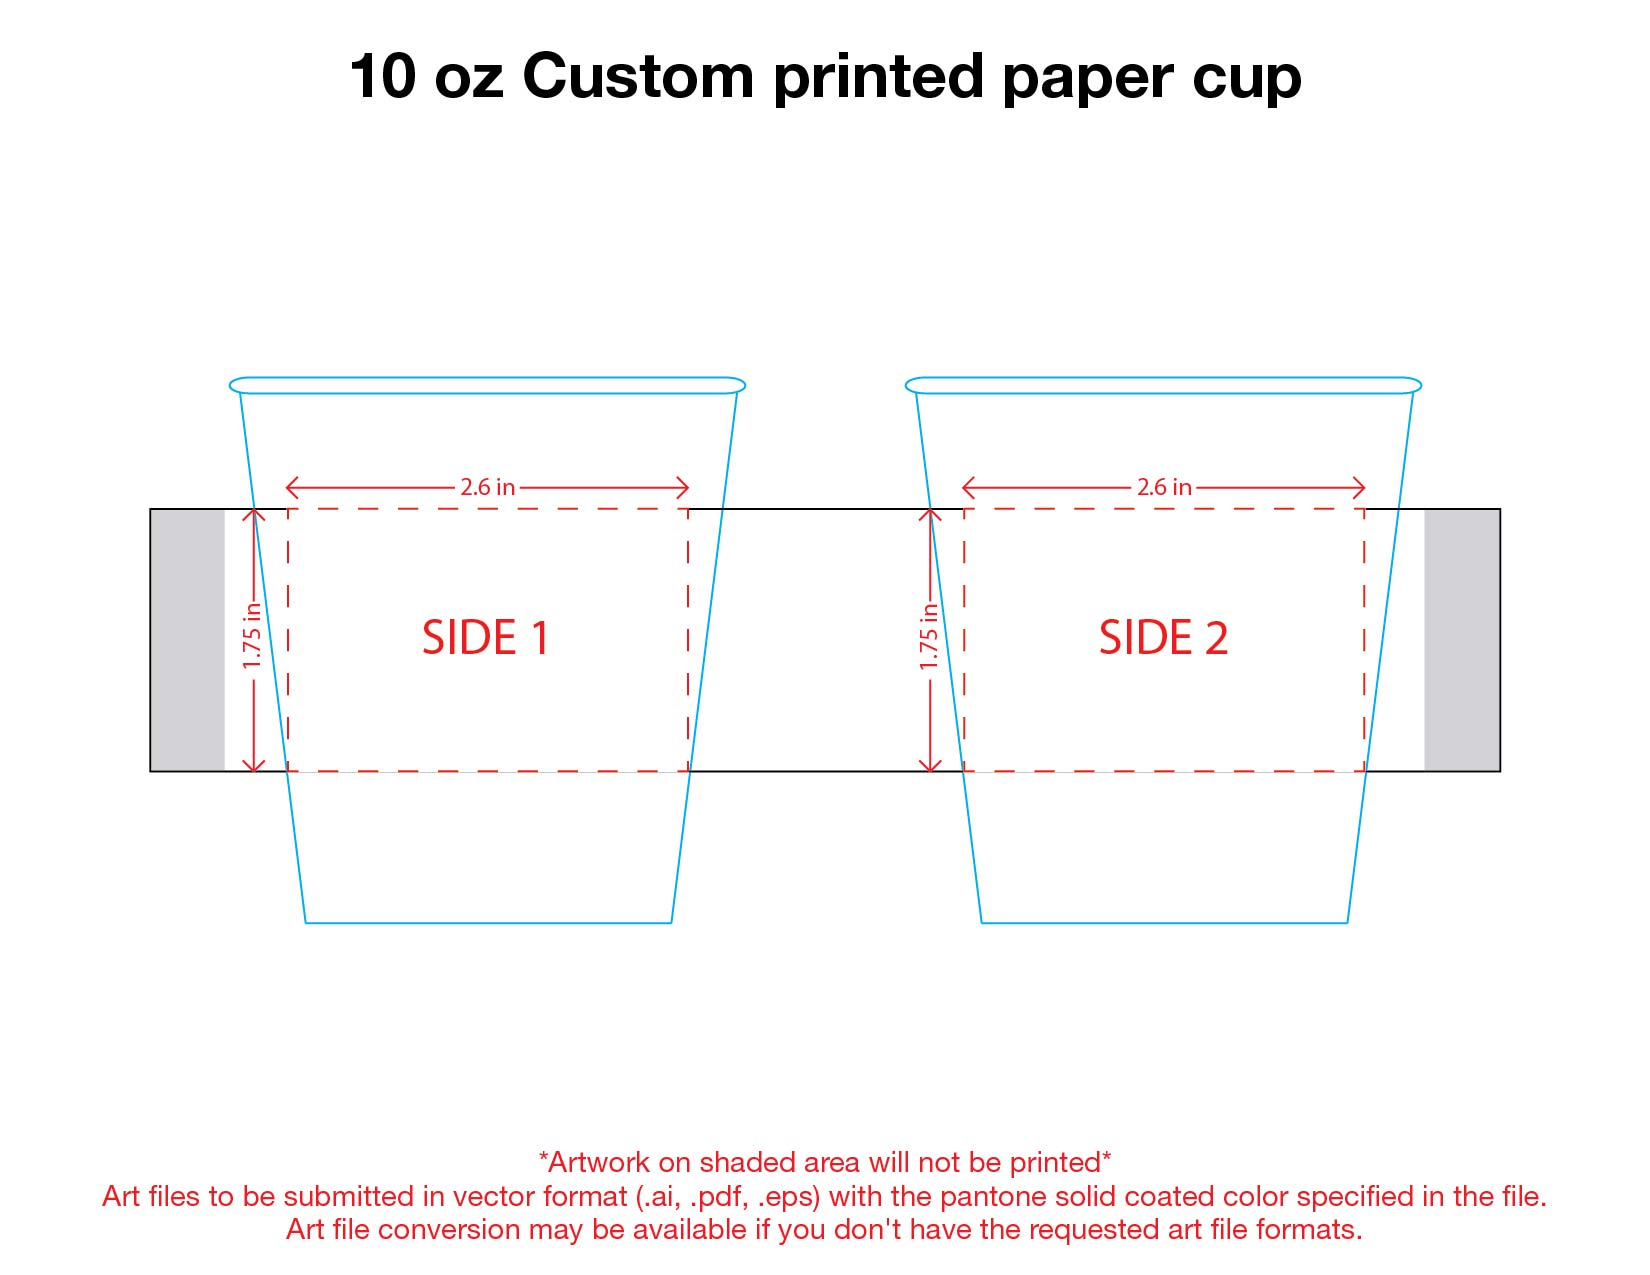 10 oz. Custom Printed Recyclable Paper